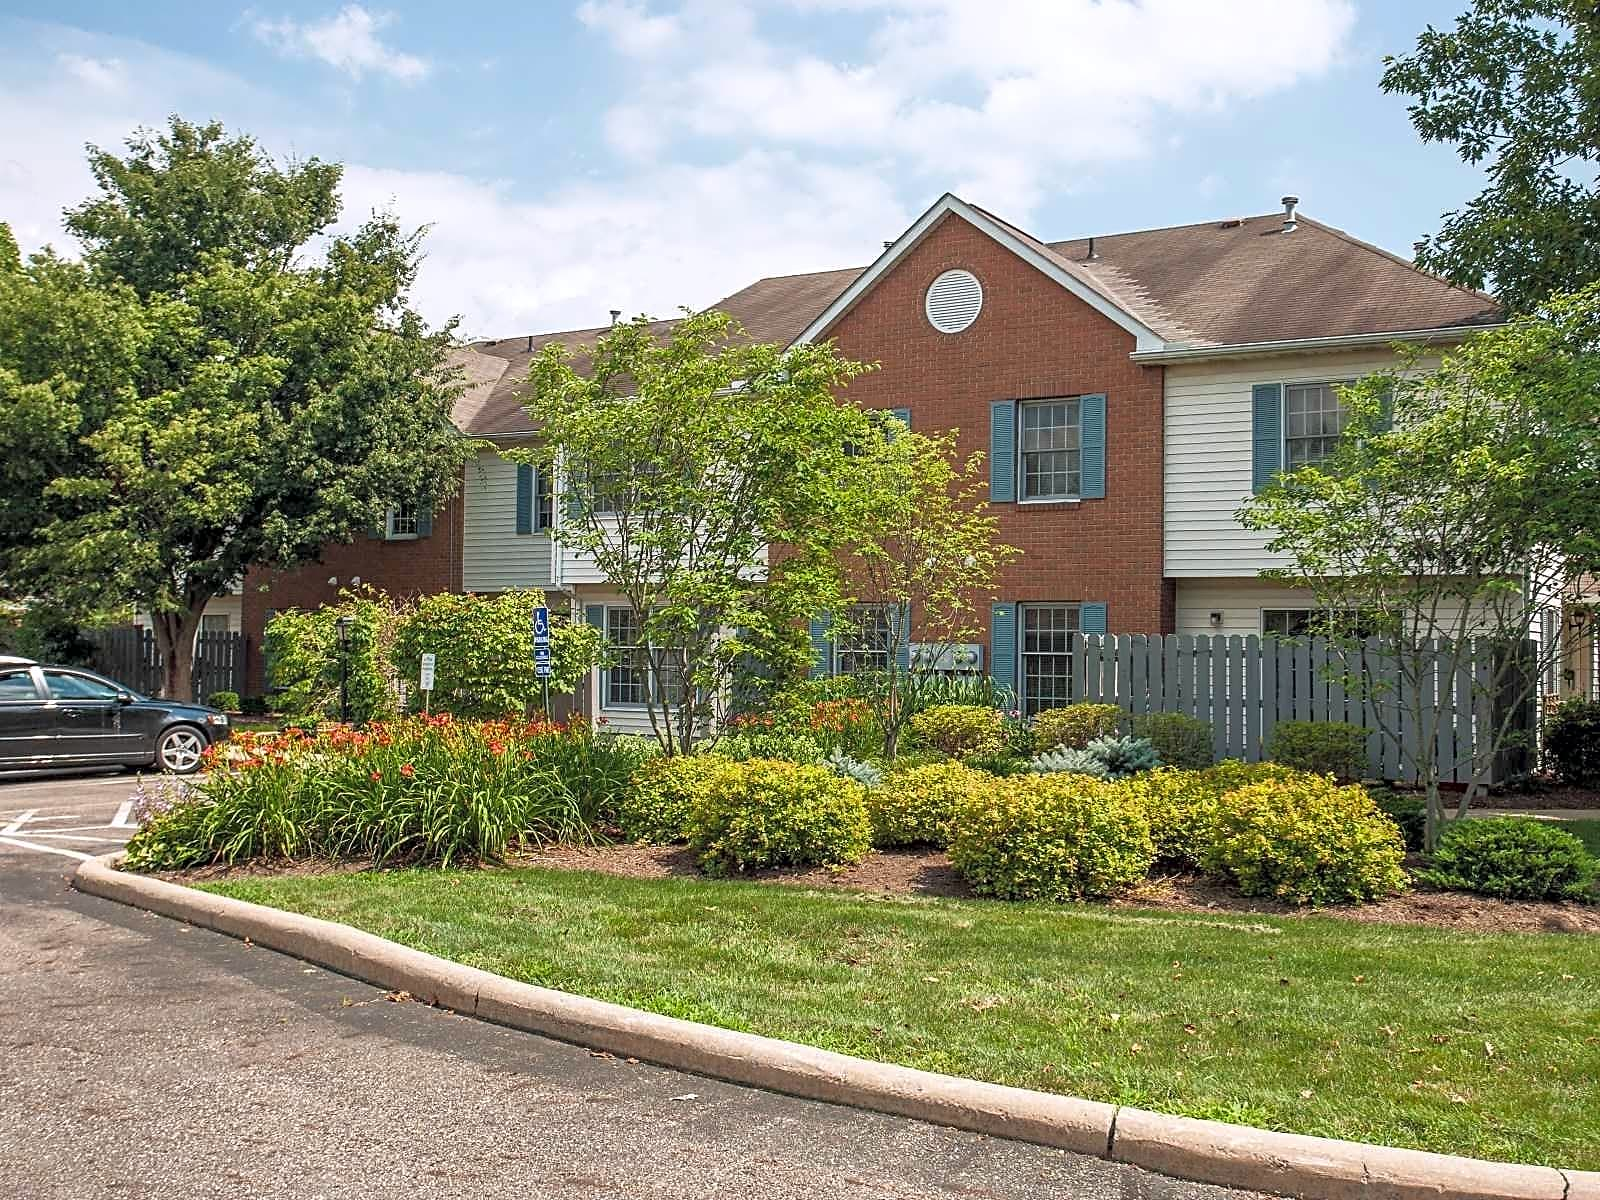 Apartments Near Malone Remington Station Townhouses for Malone University Students in Canton, OH